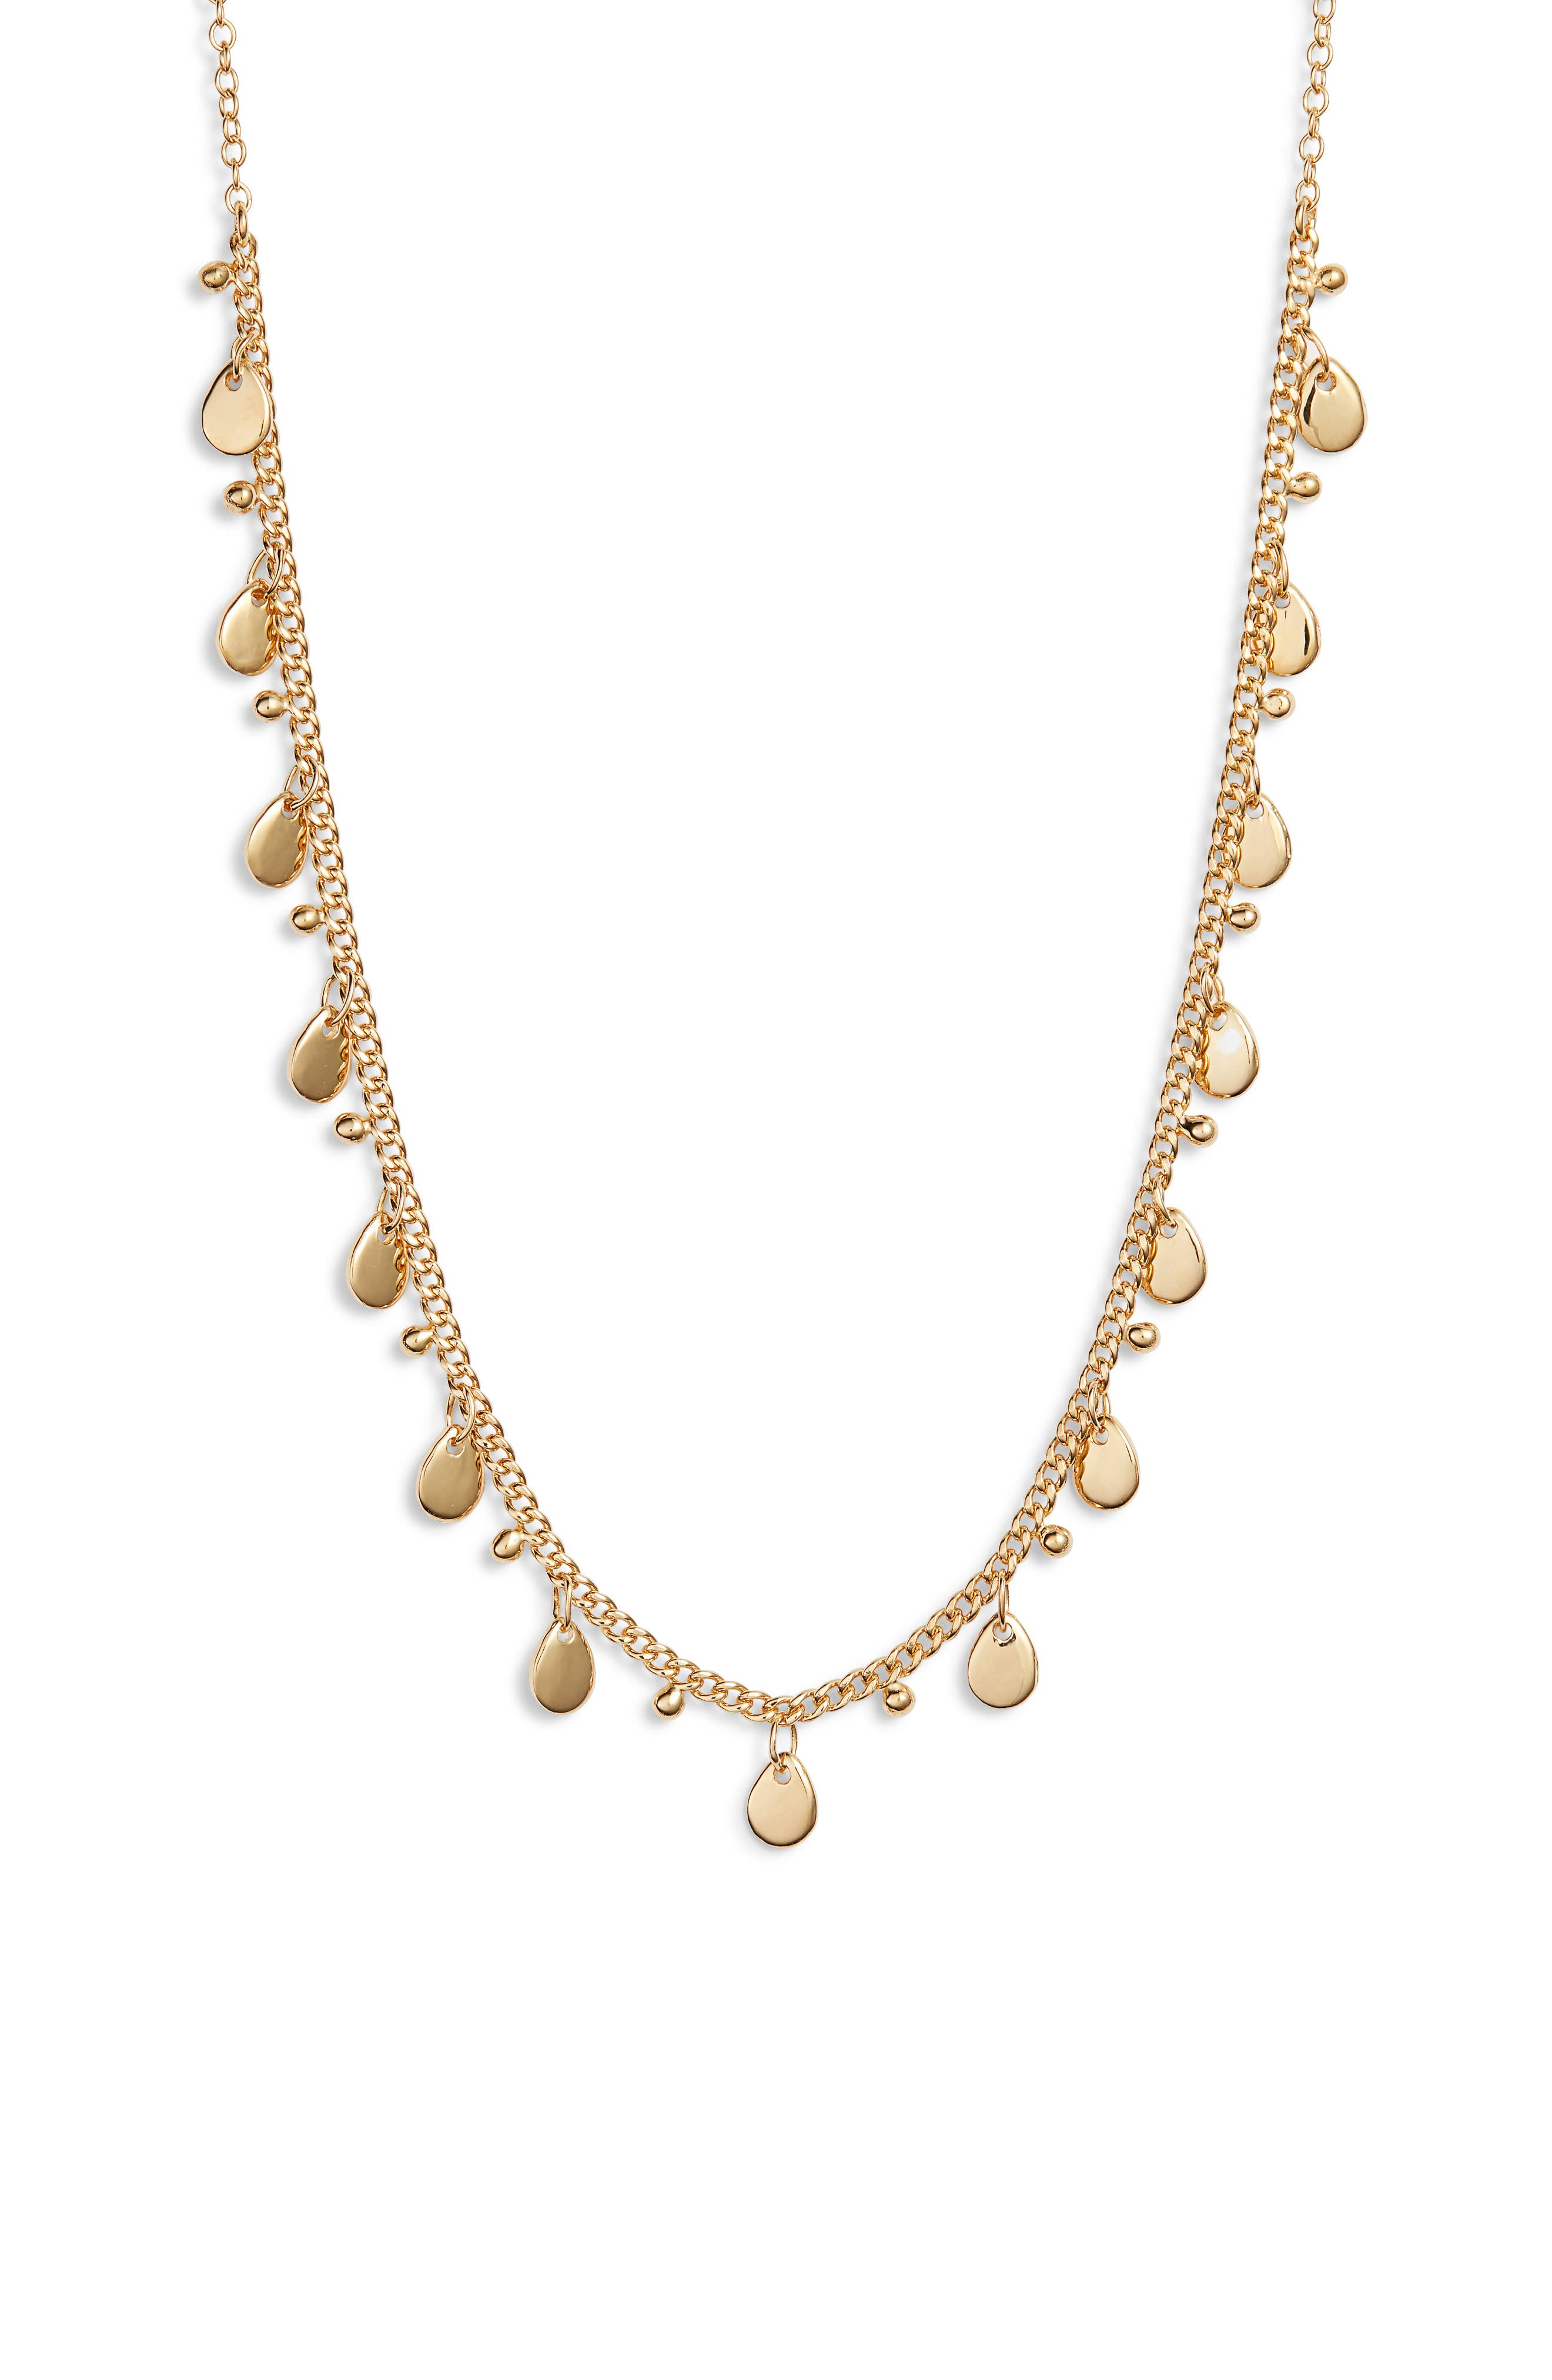 ANNA BECK Petite Charm Necklace in Gold